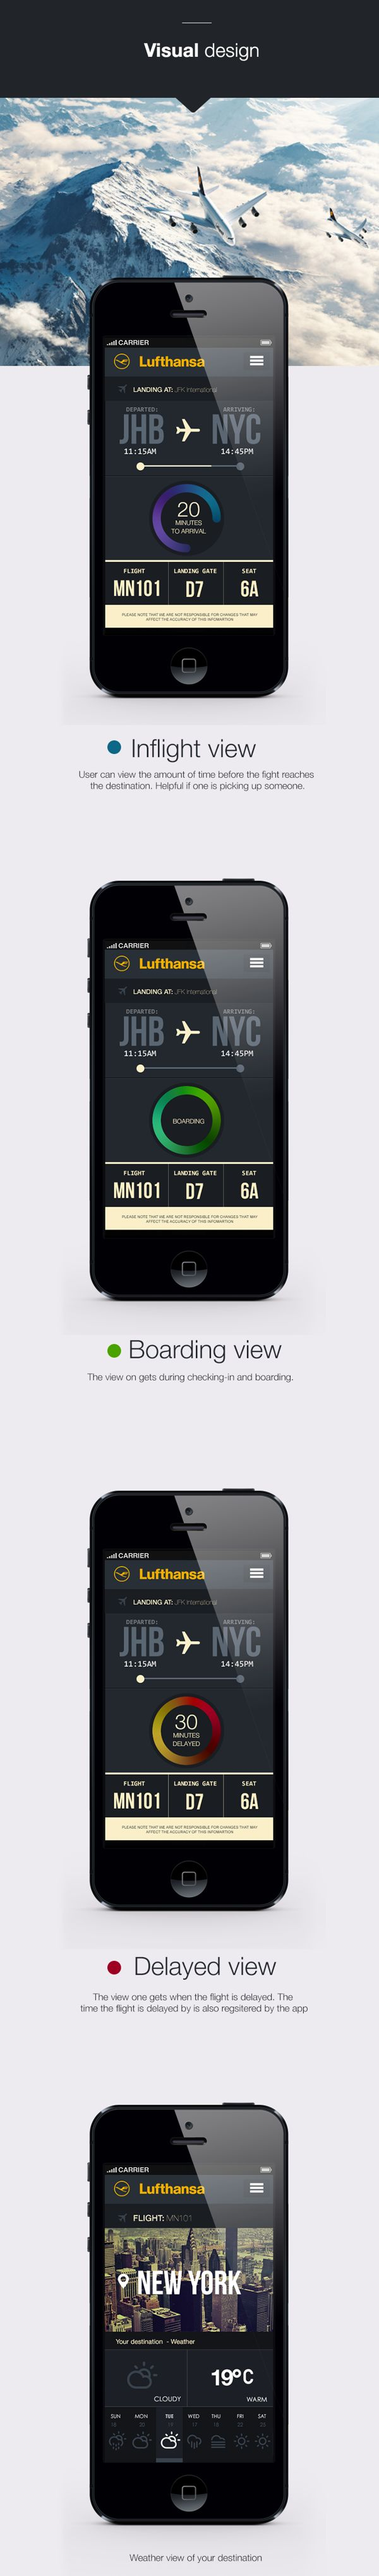 Lufthansa flight tracking app IOS7